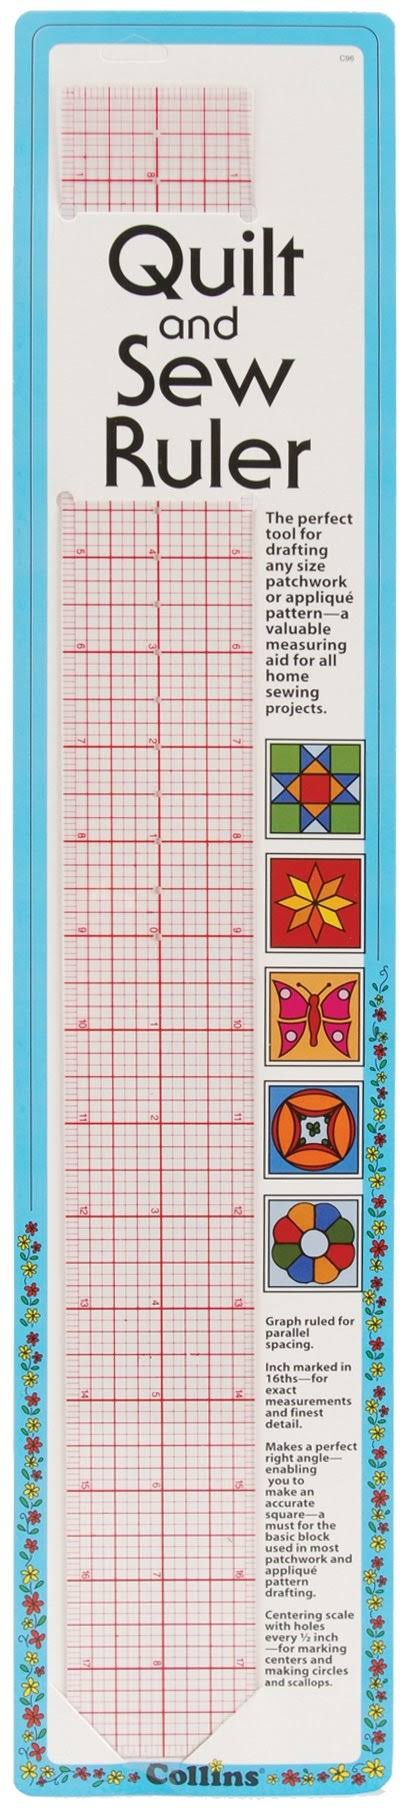 Quilt and Sew Ruler - 46cm